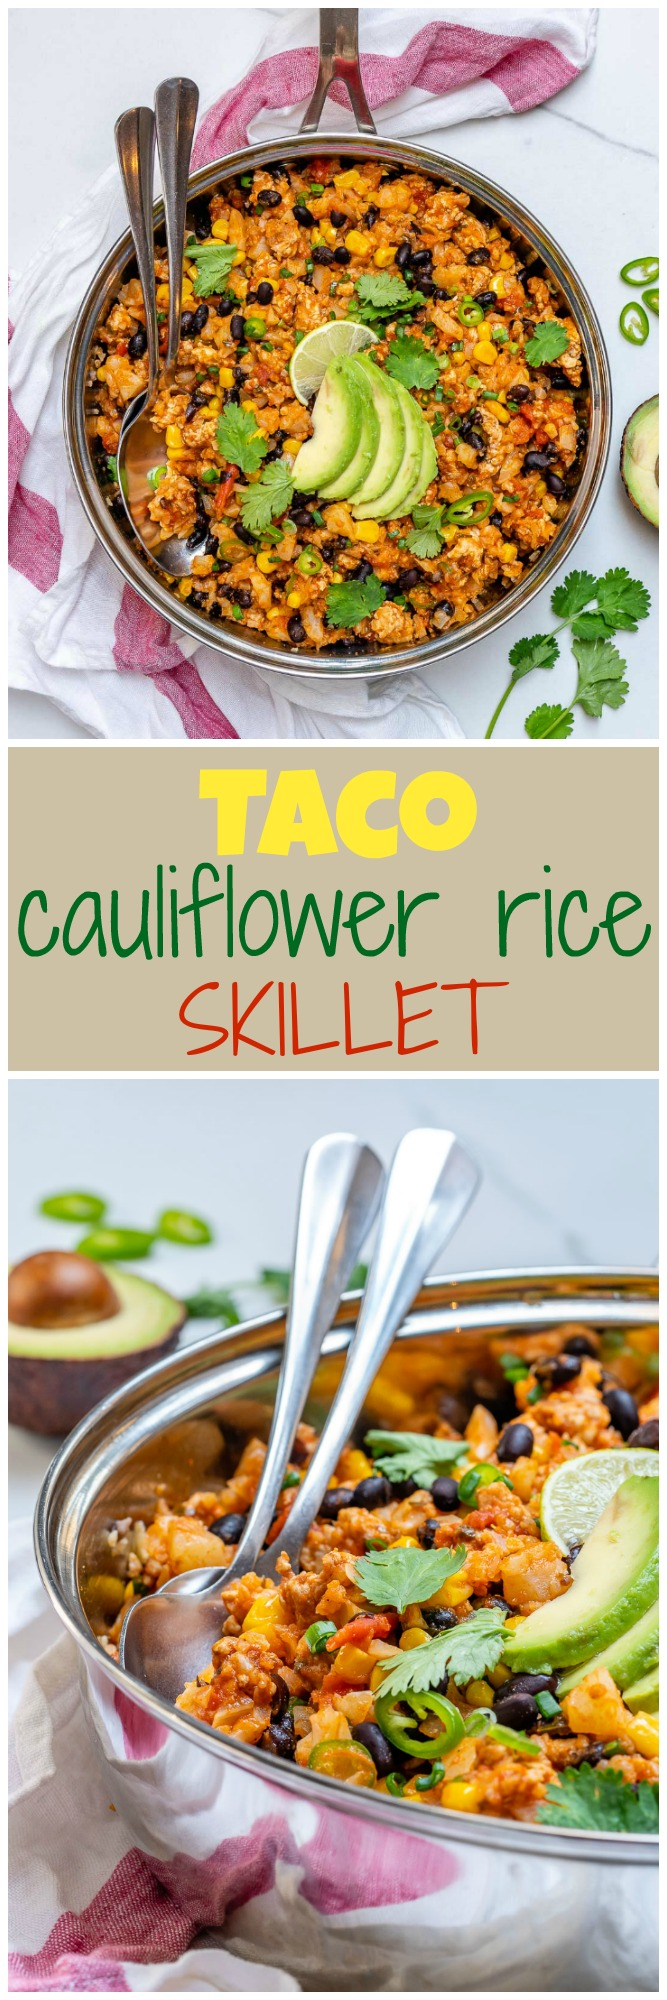 Clean Eating Skillet Taco Cauliflower Rice